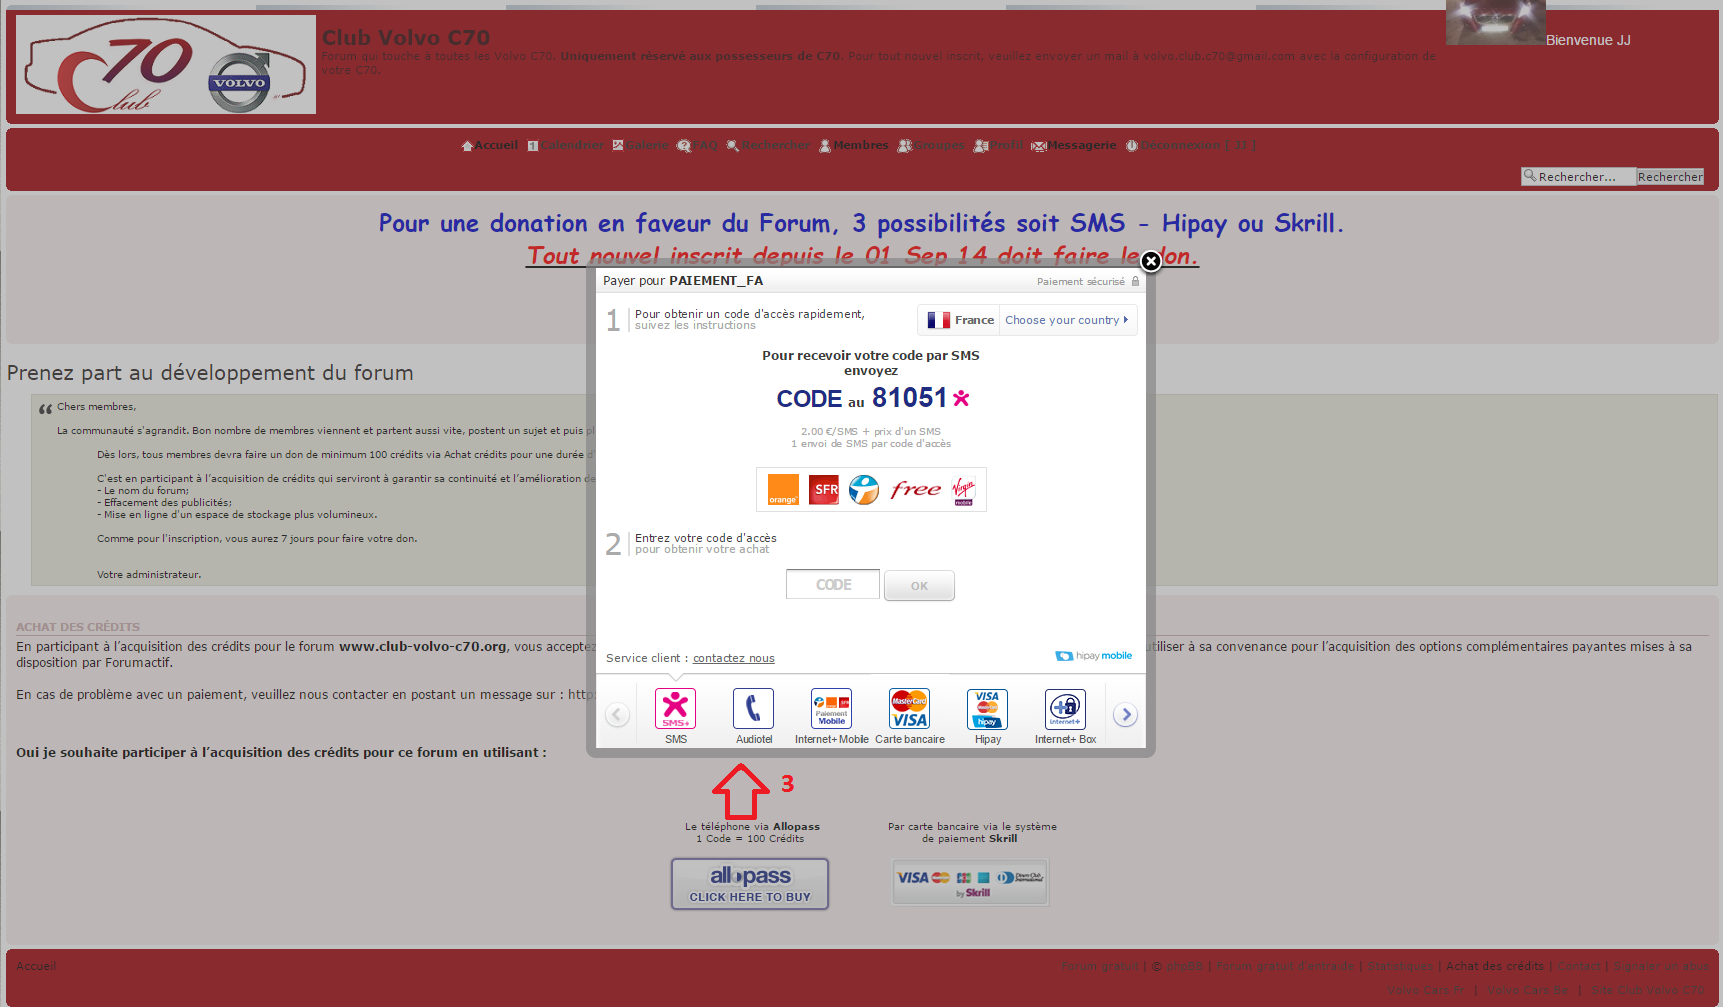 Comment faire la Contribution pour le Forum Pictur11